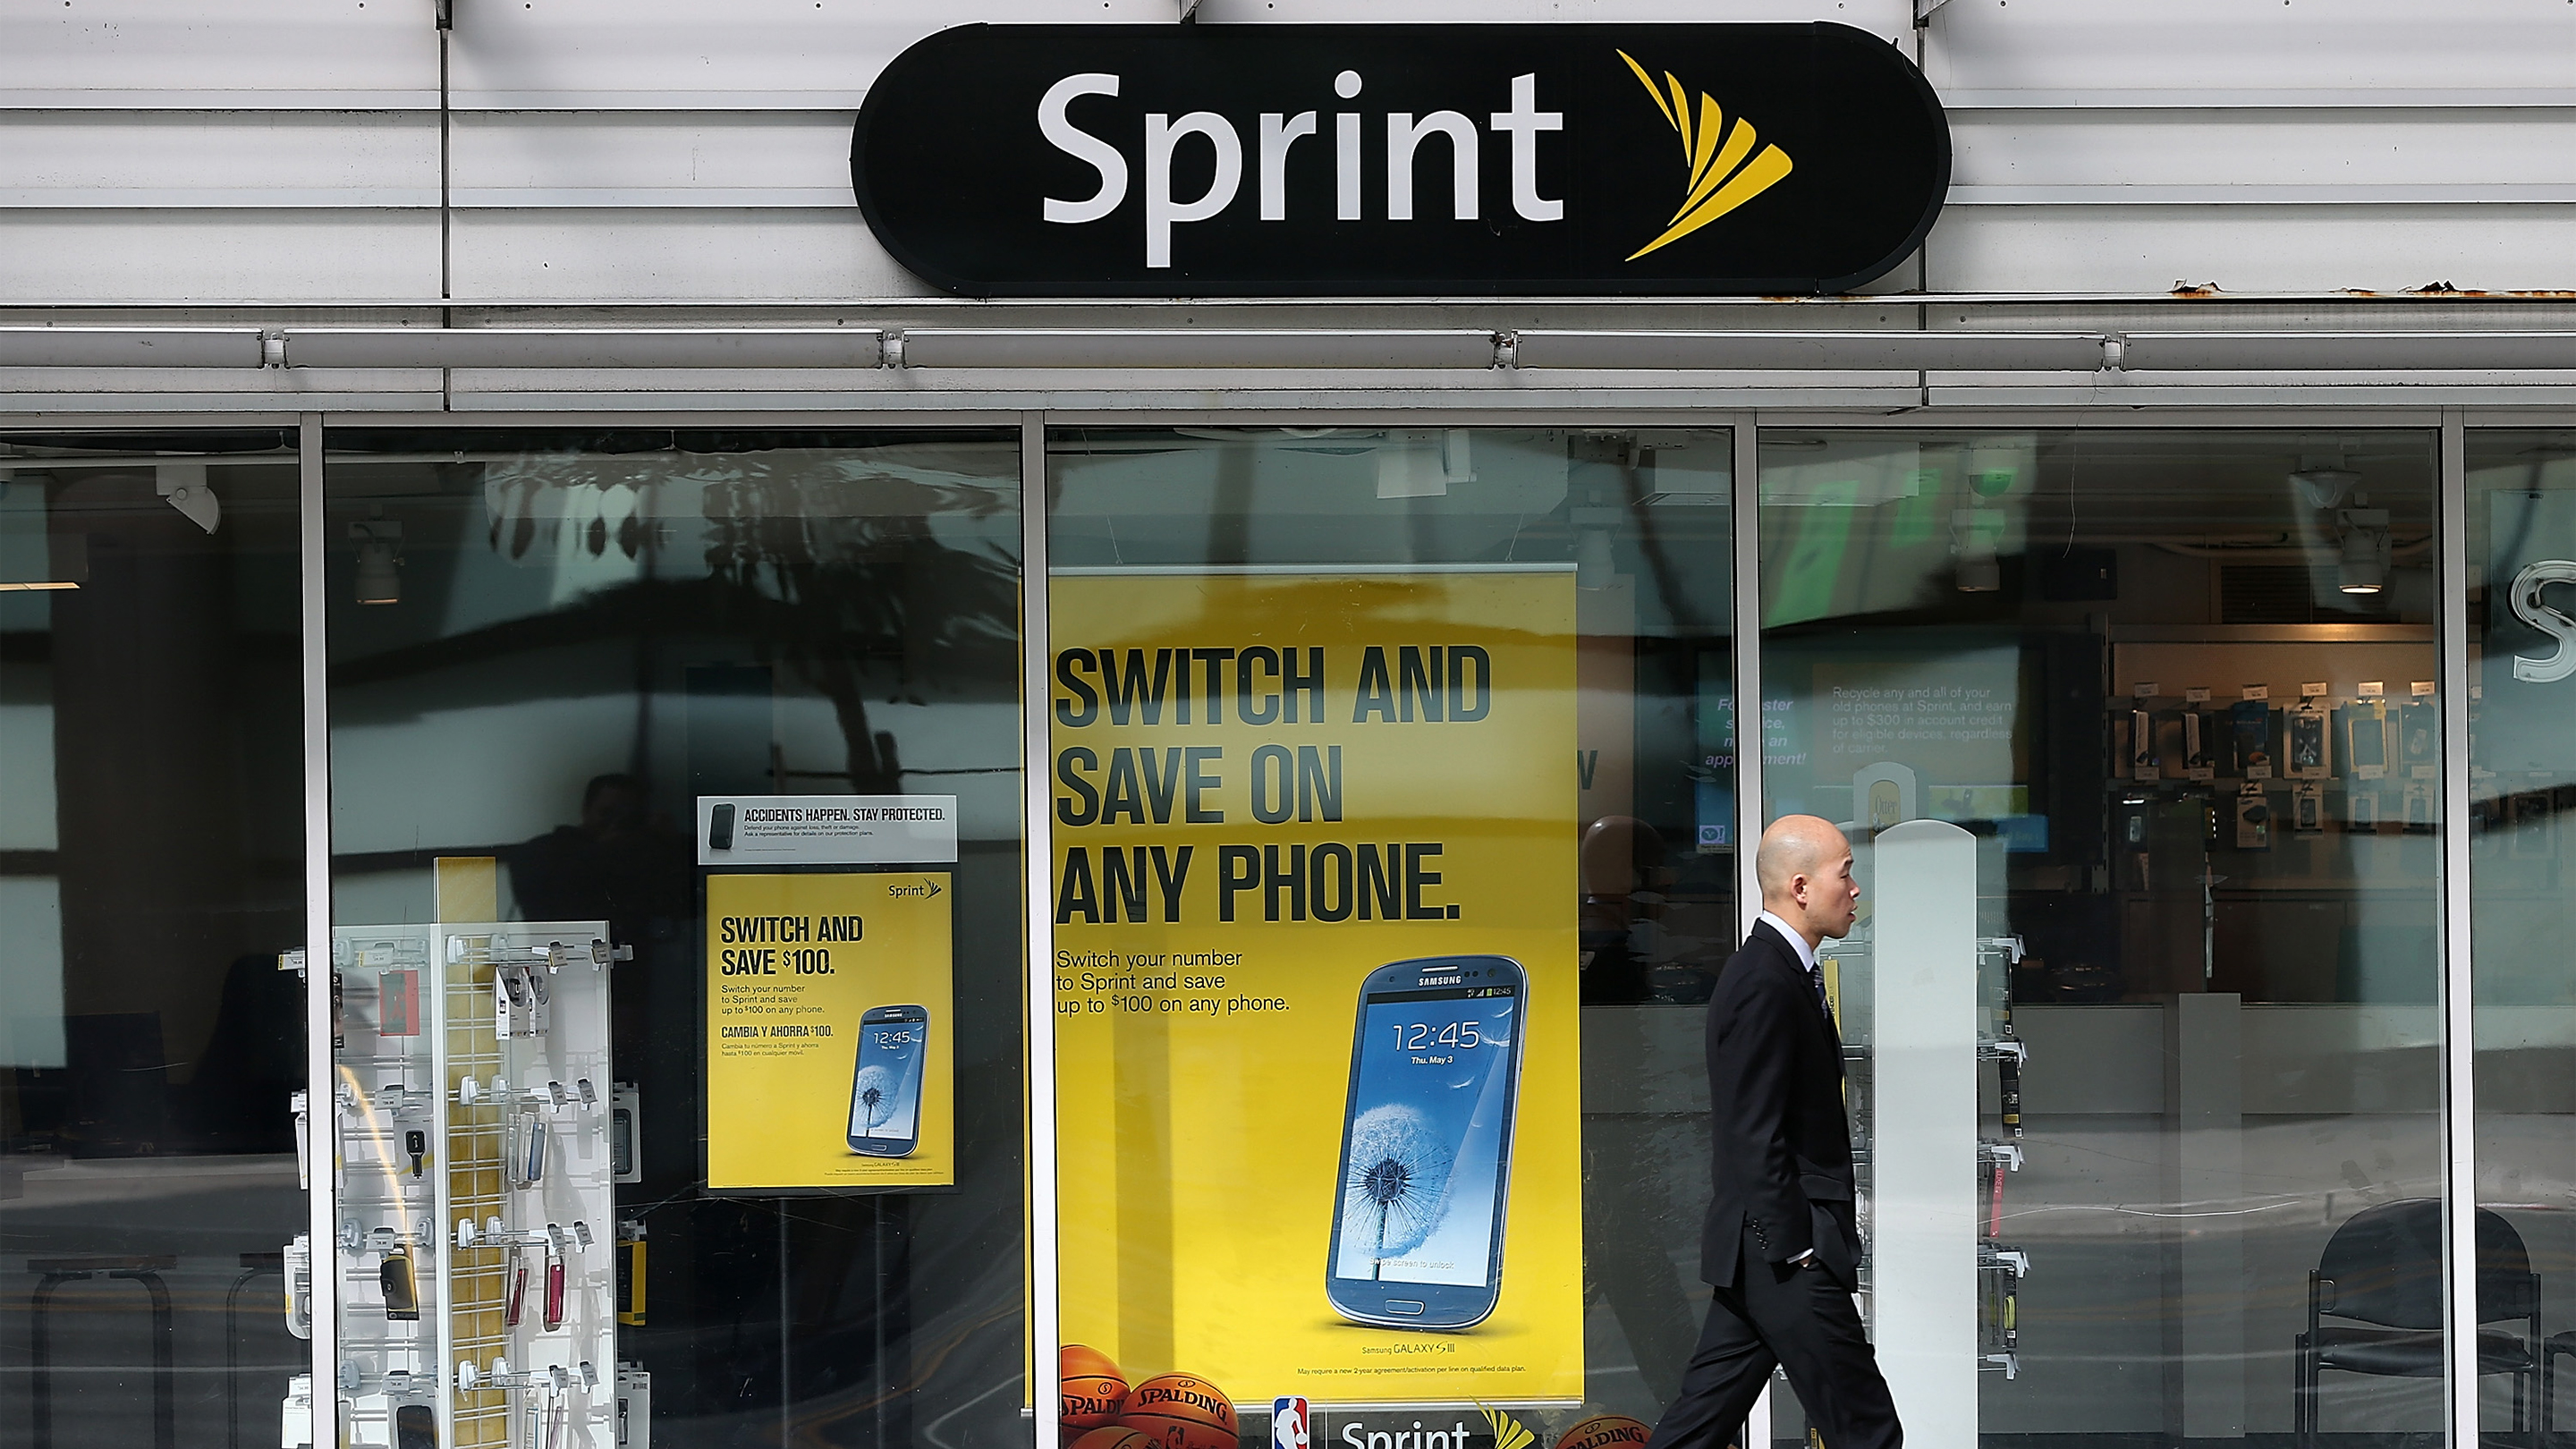 Sprint Roanoke Va >> Why Is The Sprint T Mobile Merger Taking So Long Marketplace